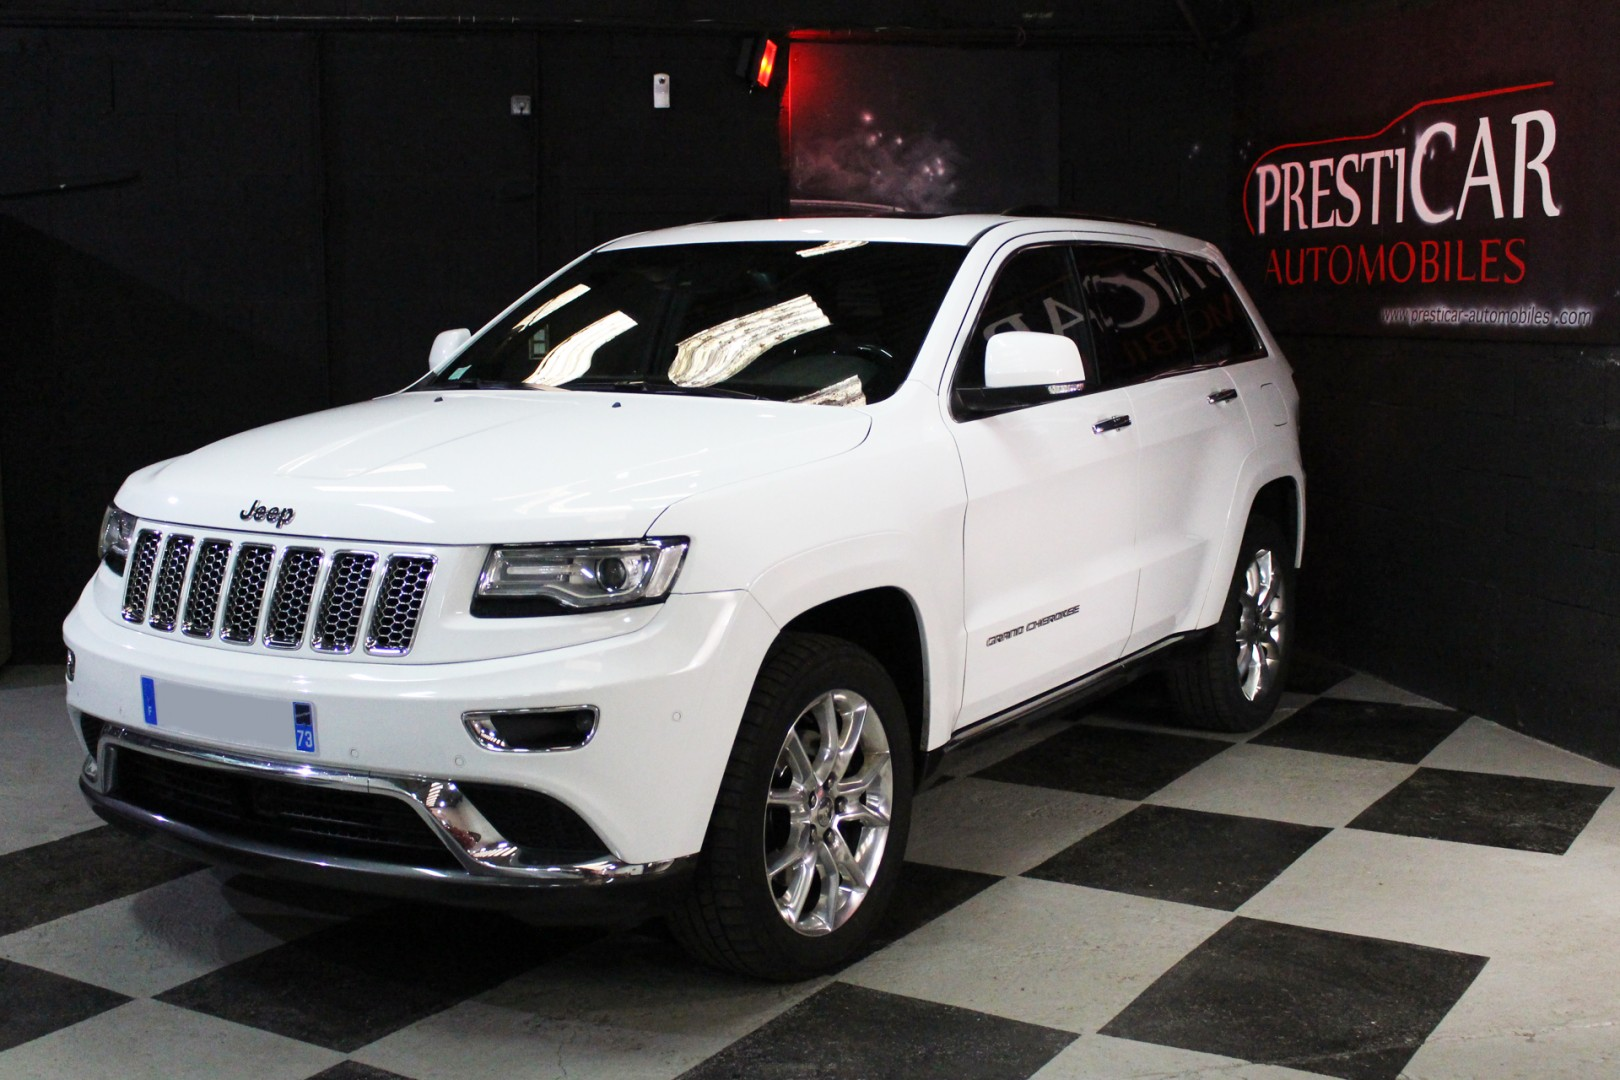 jeep grand cherokee 3 0 v6 cdr 250 summit bva8 presticar automobiles. Black Bedroom Furniture Sets. Home Design Ideas